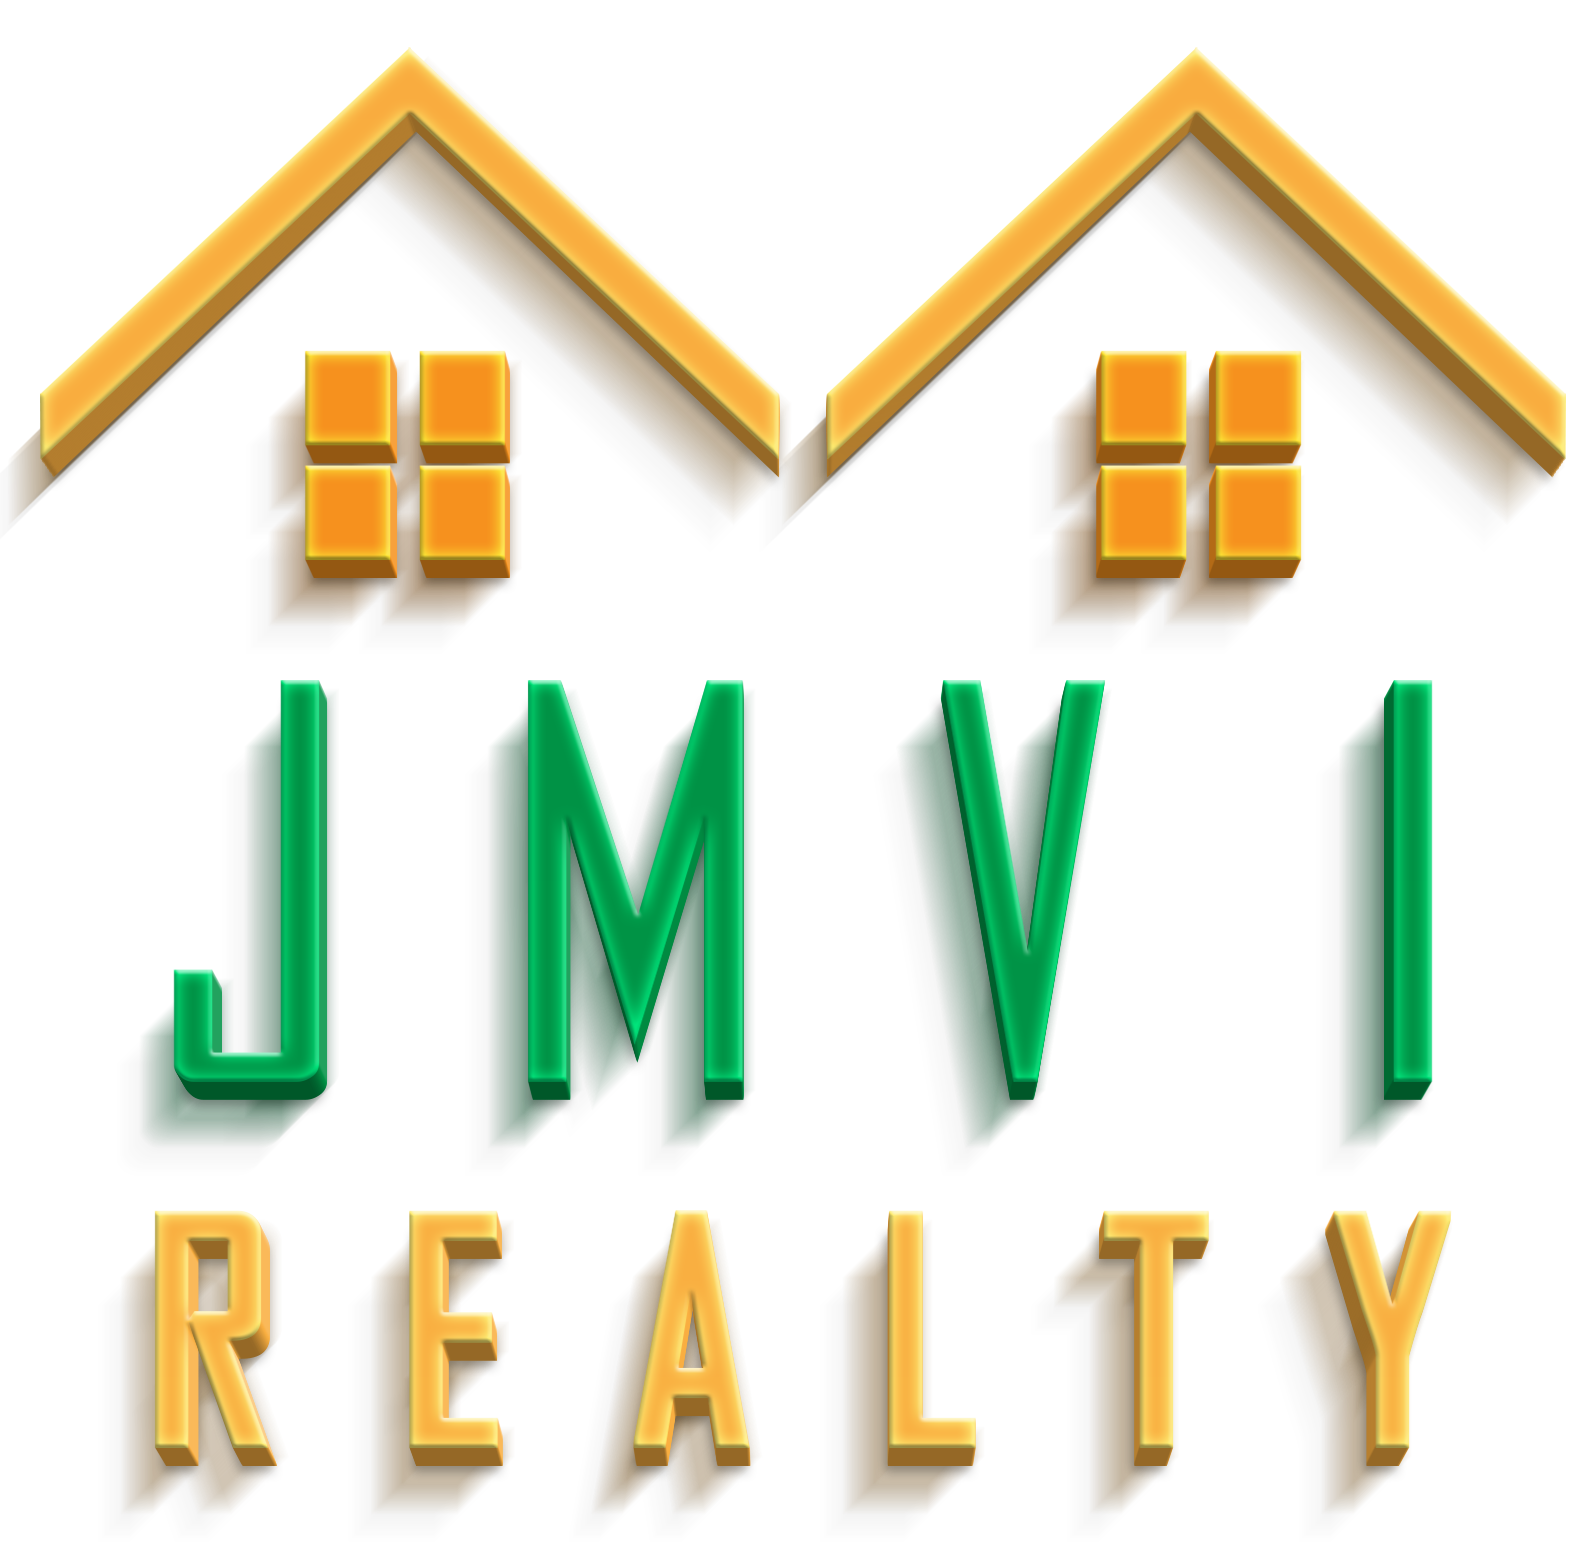 JMVI Realty Launches Revolutionary Real Estate App for Caribbean Properties